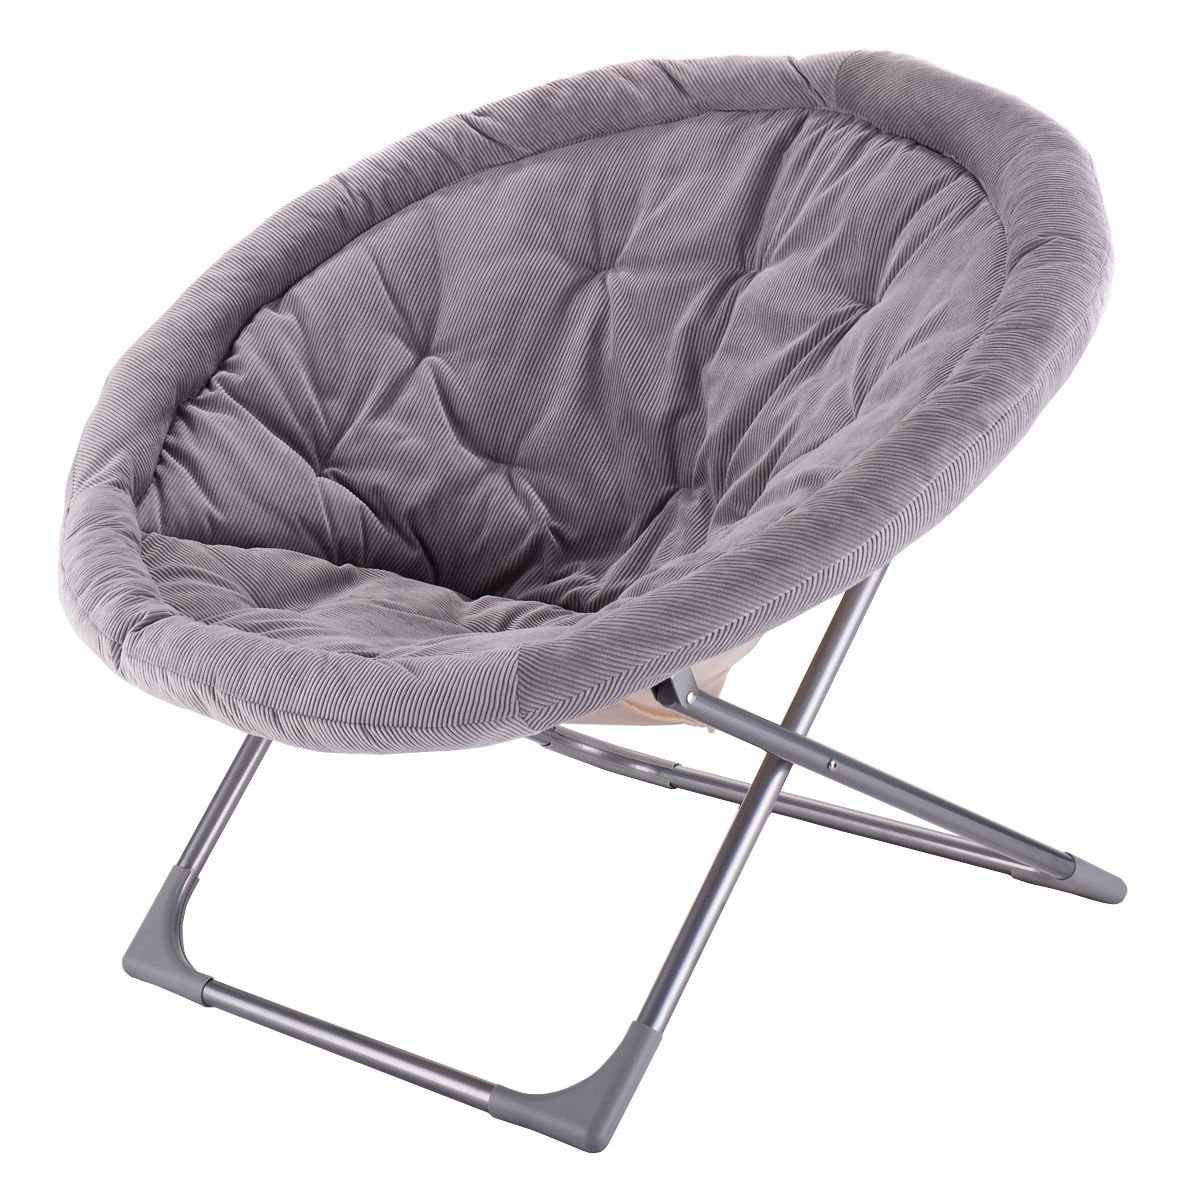 folding chair for living room walmart wooden chairs newoversized large saucer moon corduroy round seat departments